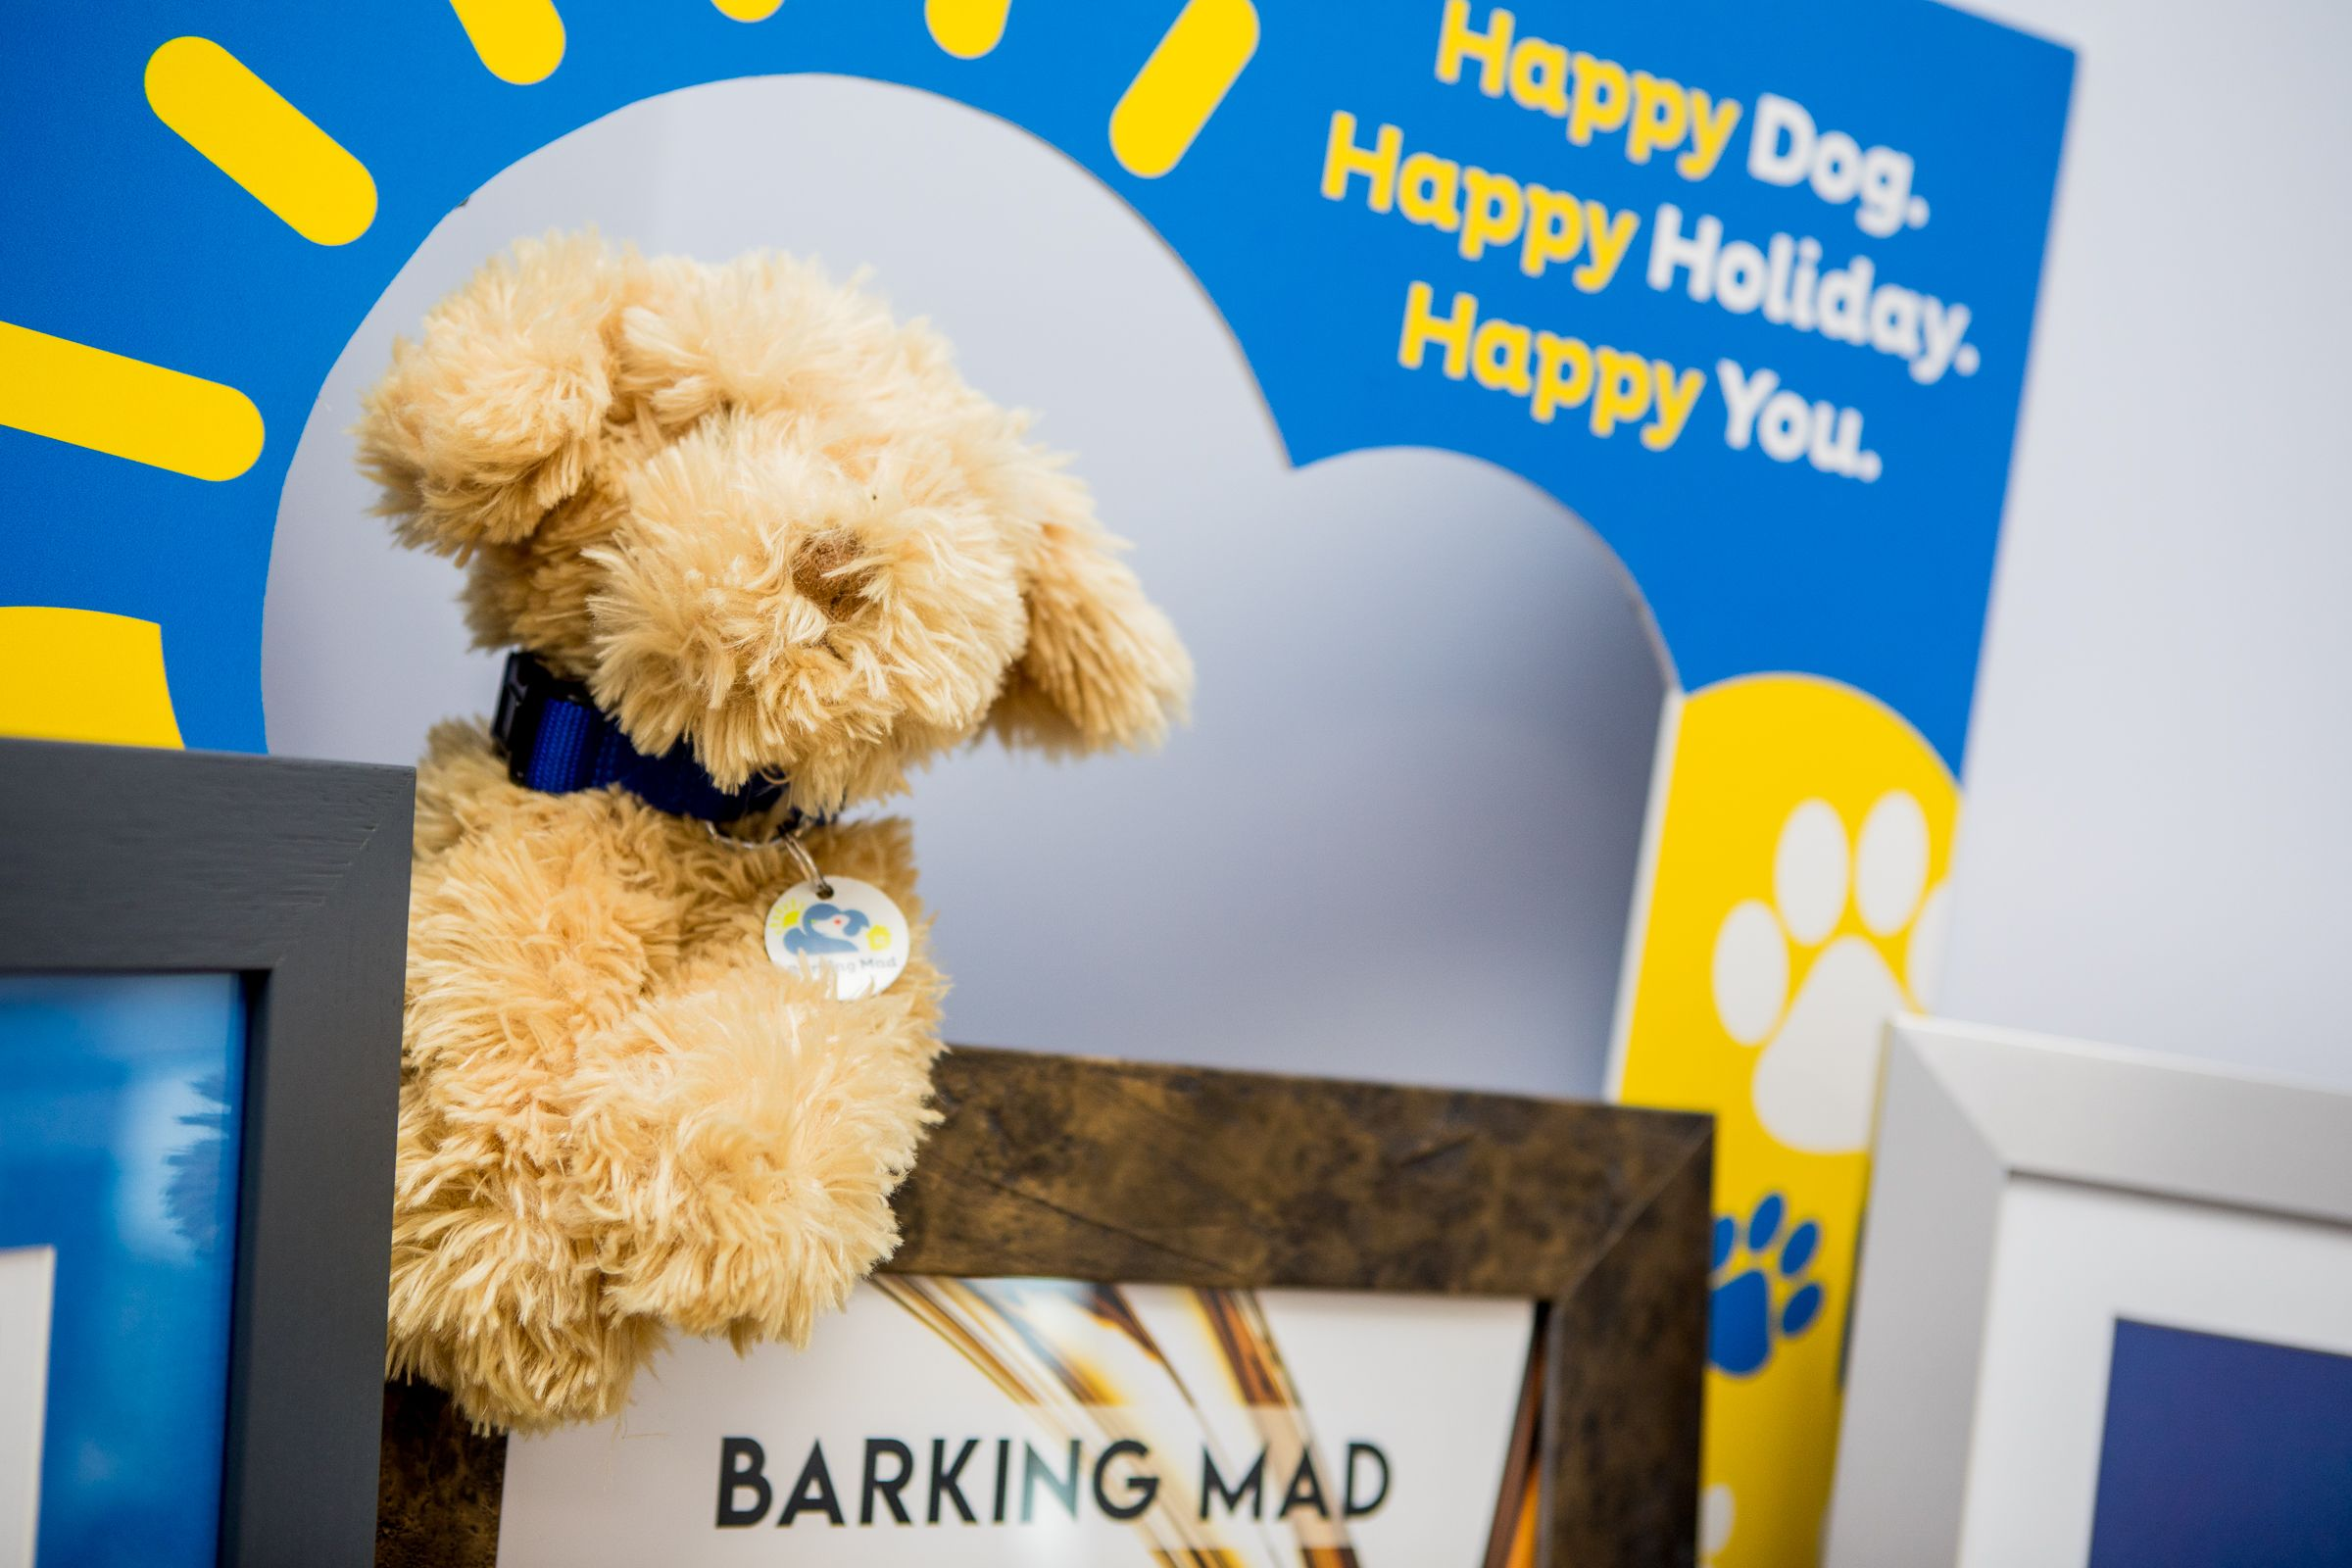 Barking Mad Office Dog Home Boarding Happy Holiday Franchise